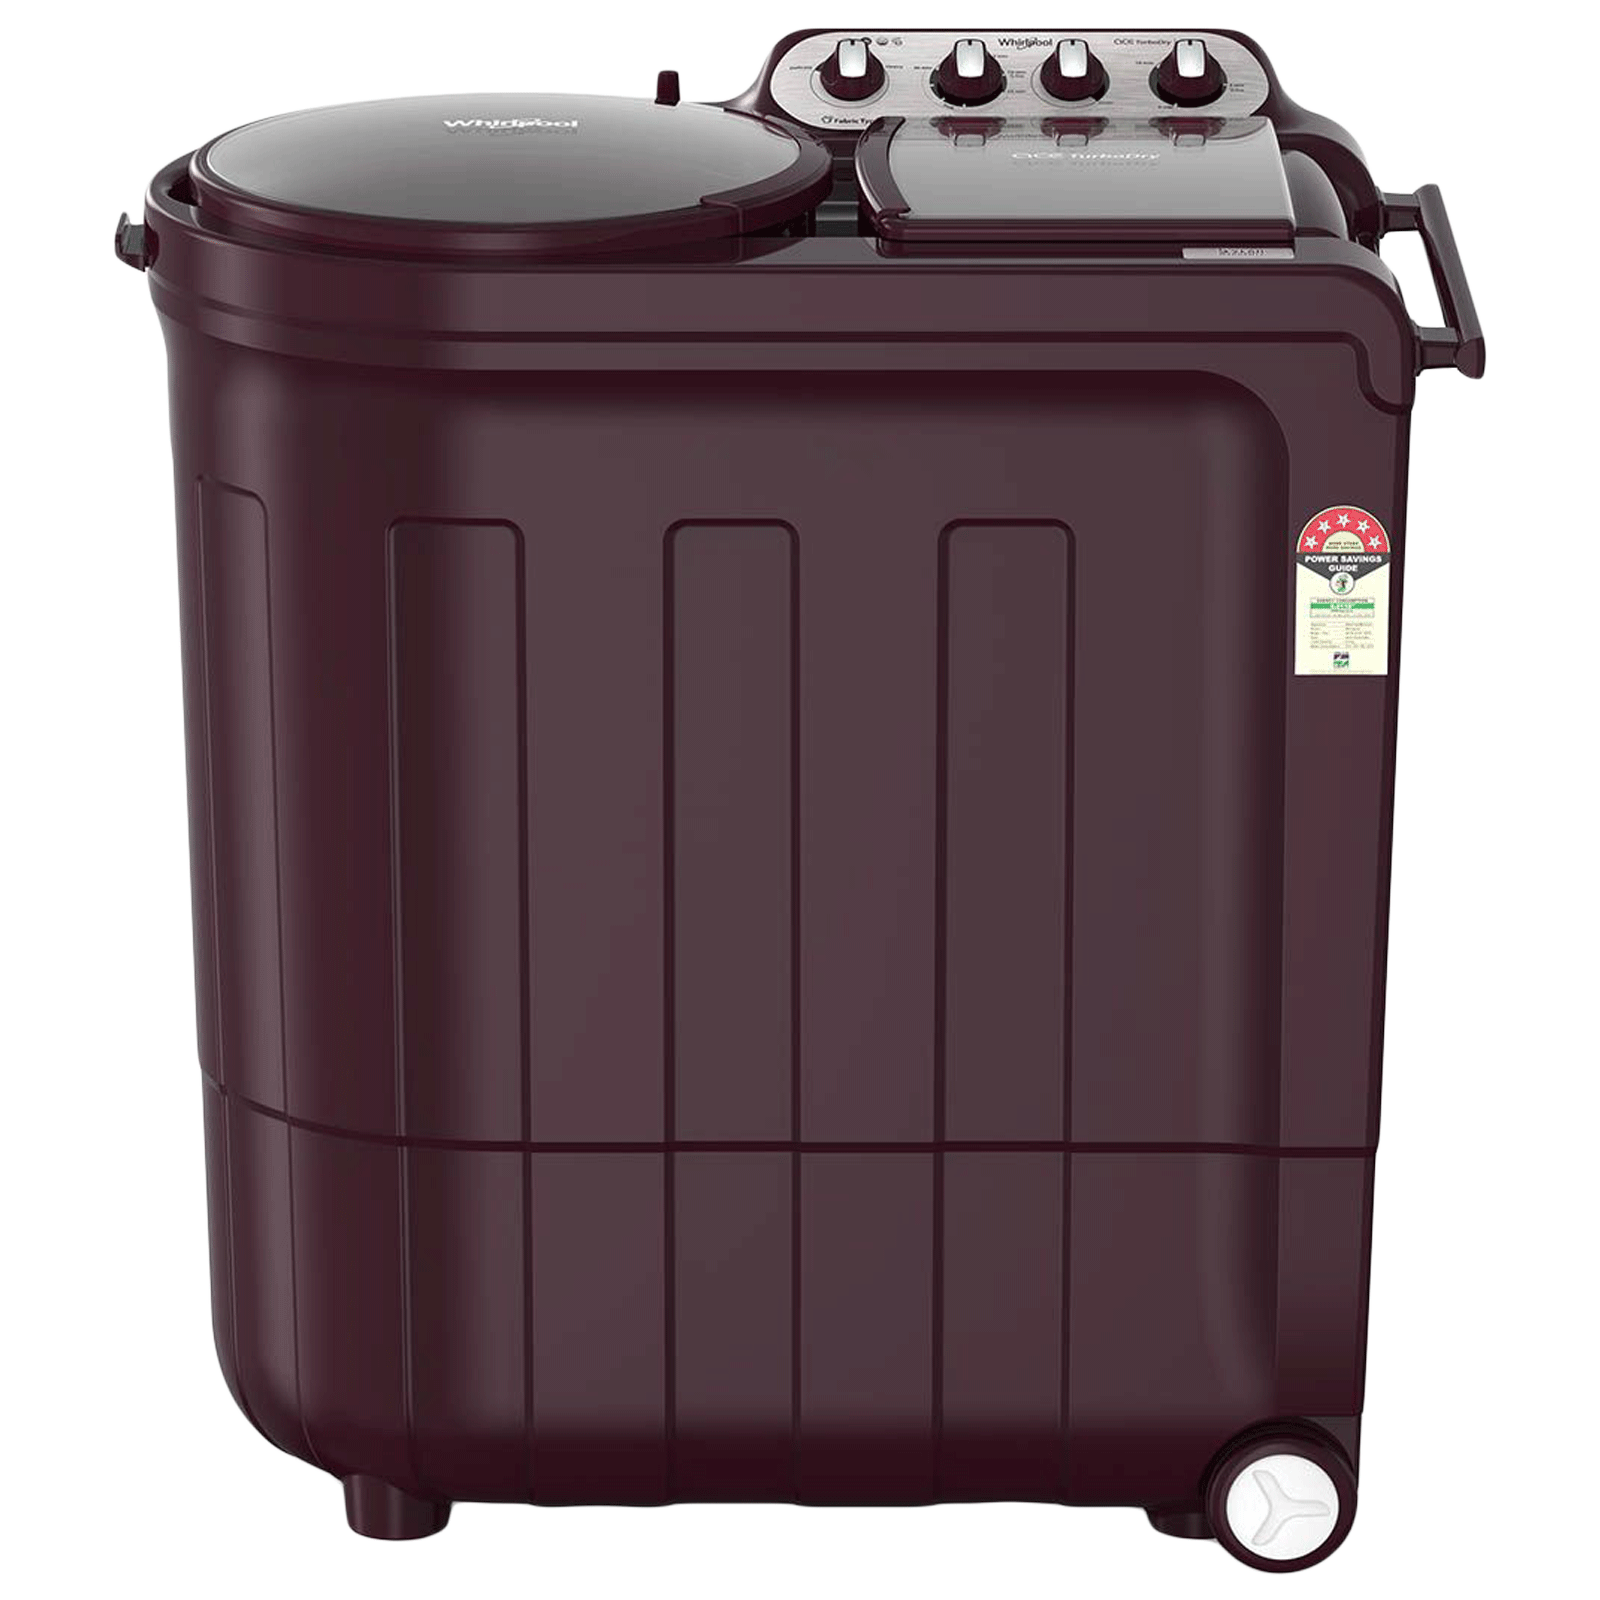 Whirlpool Ace 8.5 kg 5 Star Semi-Automatic Front Load Washing Machine (Impeller Wash Technology, Ace 8.5 TURBODRY, Wine Dazzle) _1